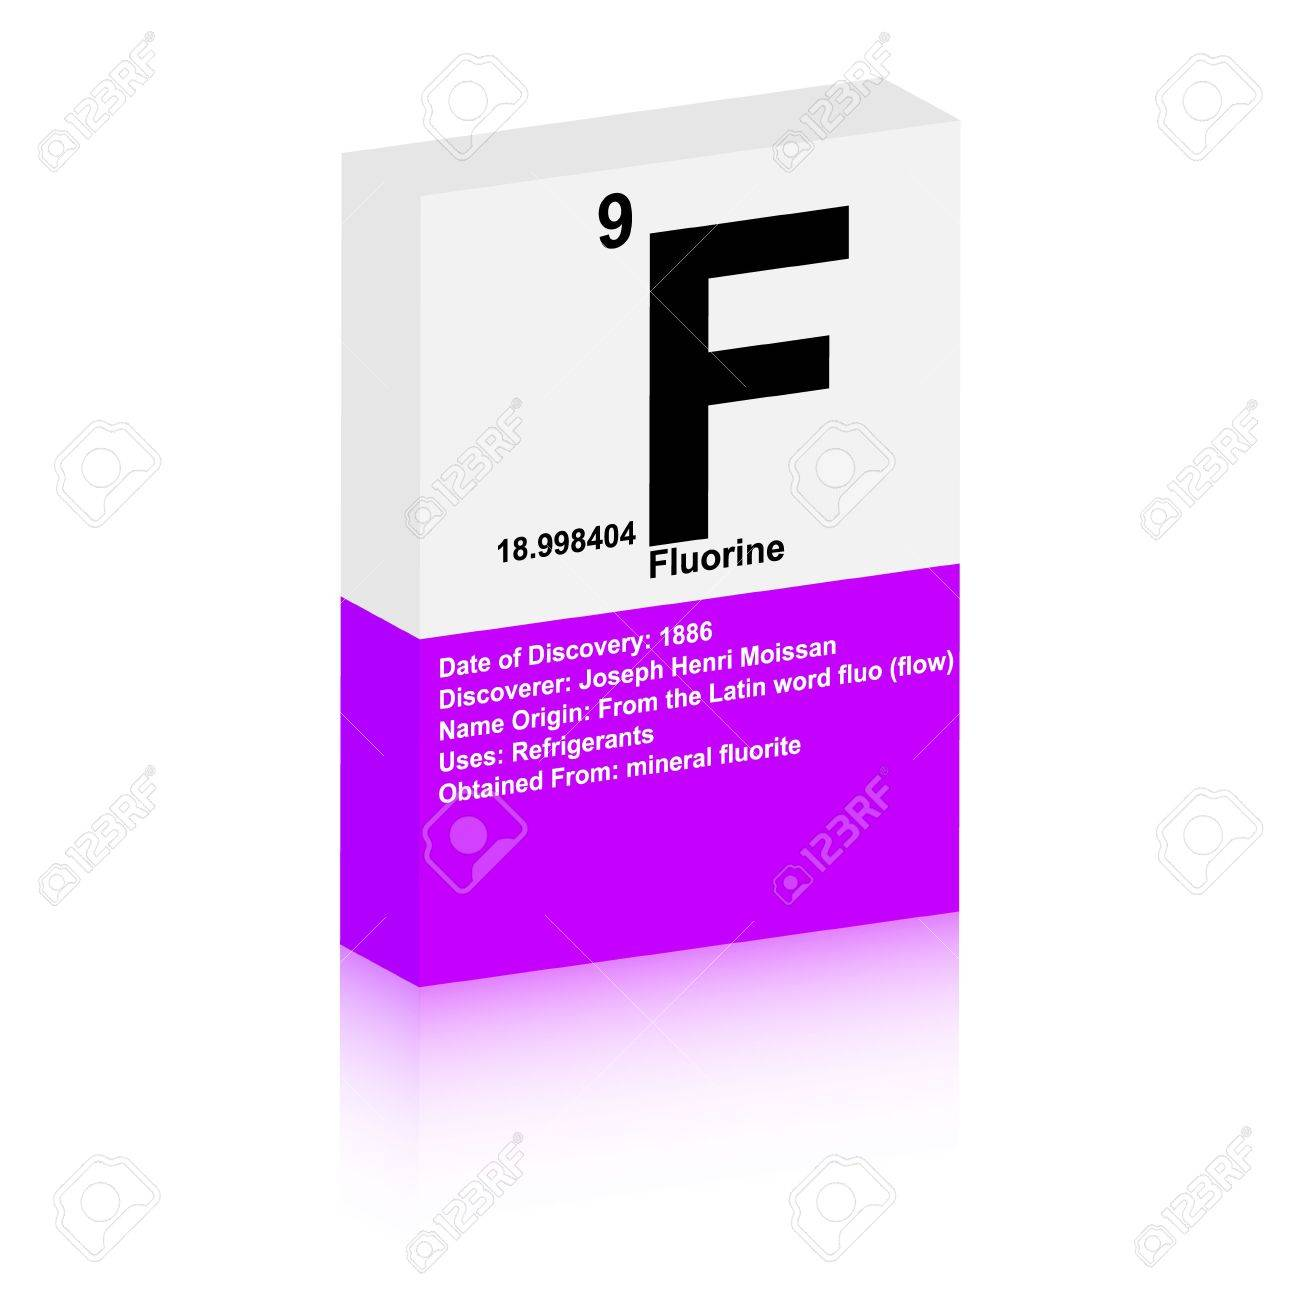 Fluorine symbol royalty free cliparts vectors and stock fluorine symbol stock vector 13340918 gamestrikefo Image collections